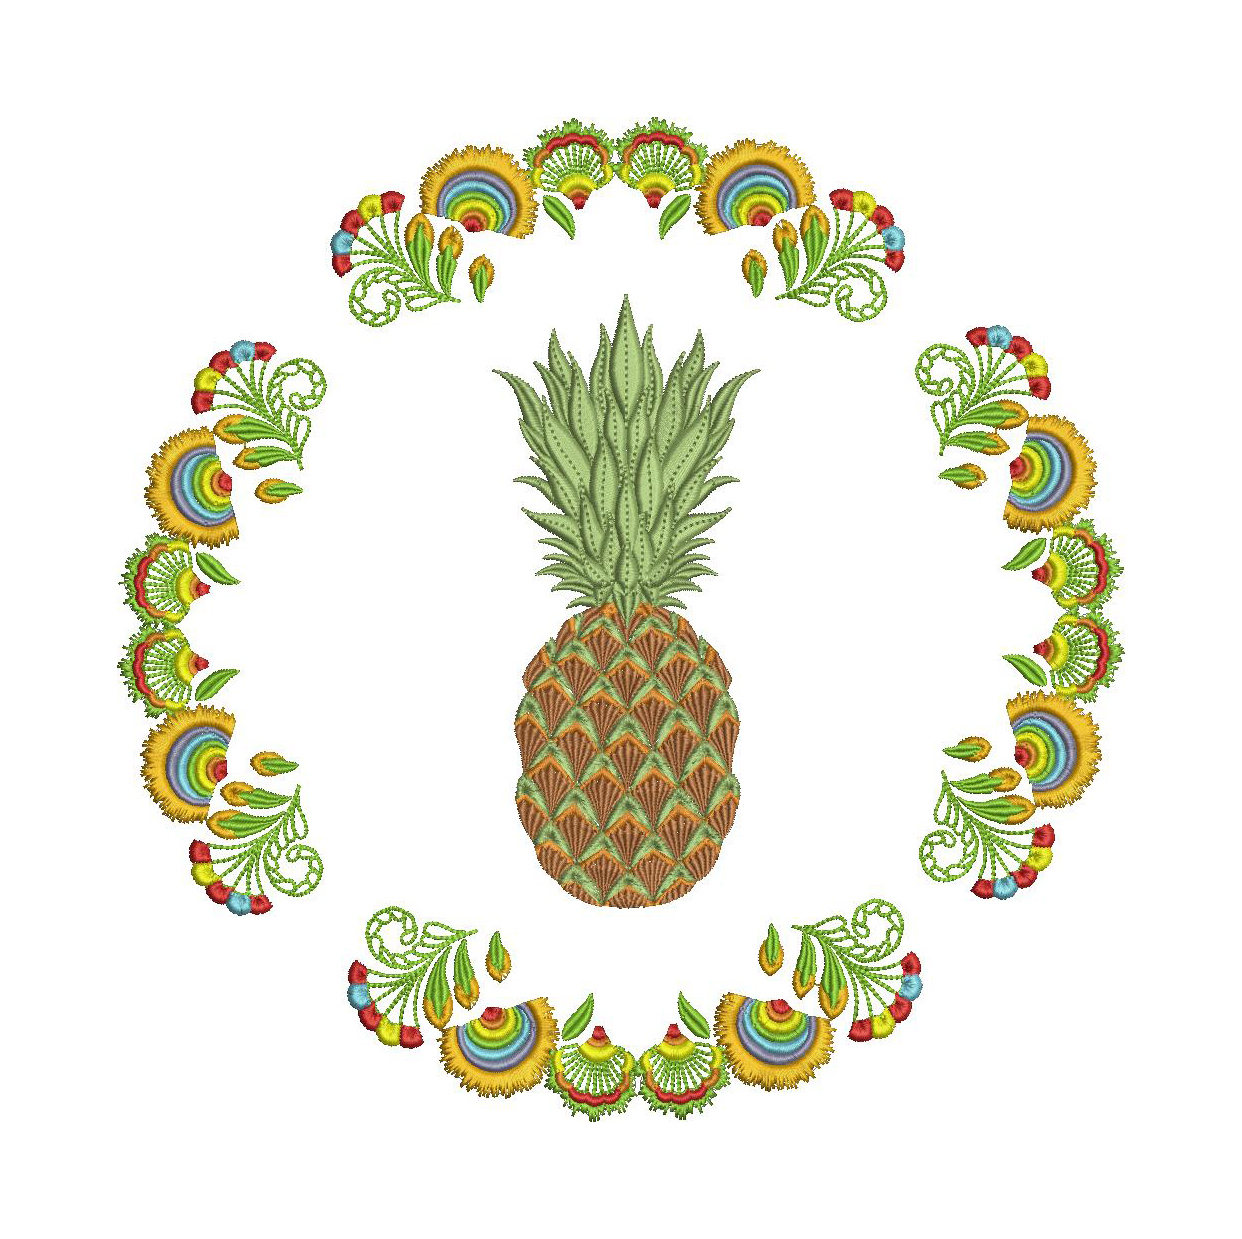 Boho clipart pineapple. Ananas fruit tropical plant